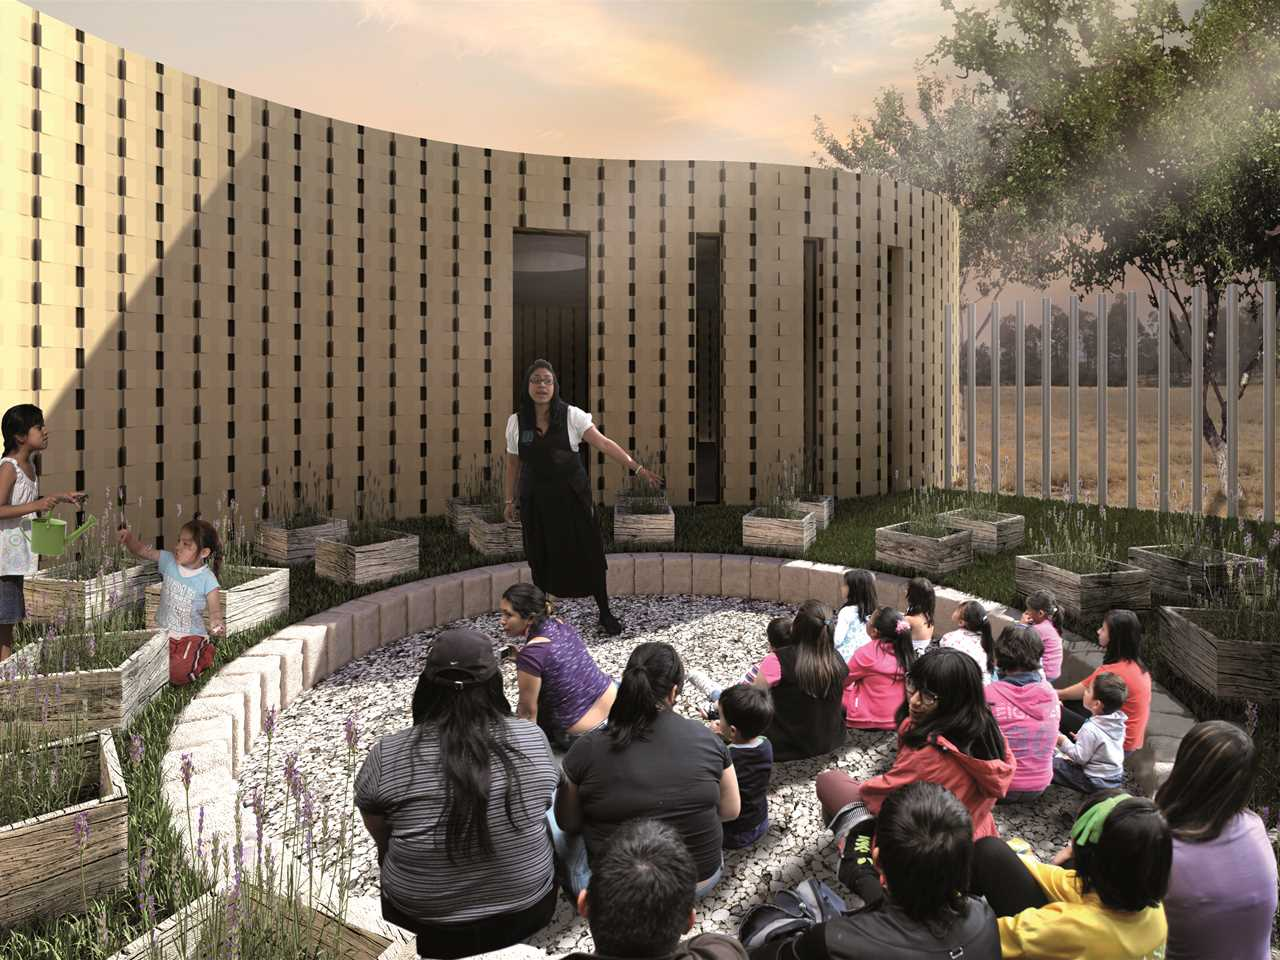 Global finalist entry 2015 - Children's House: Pedagogically-aligned school